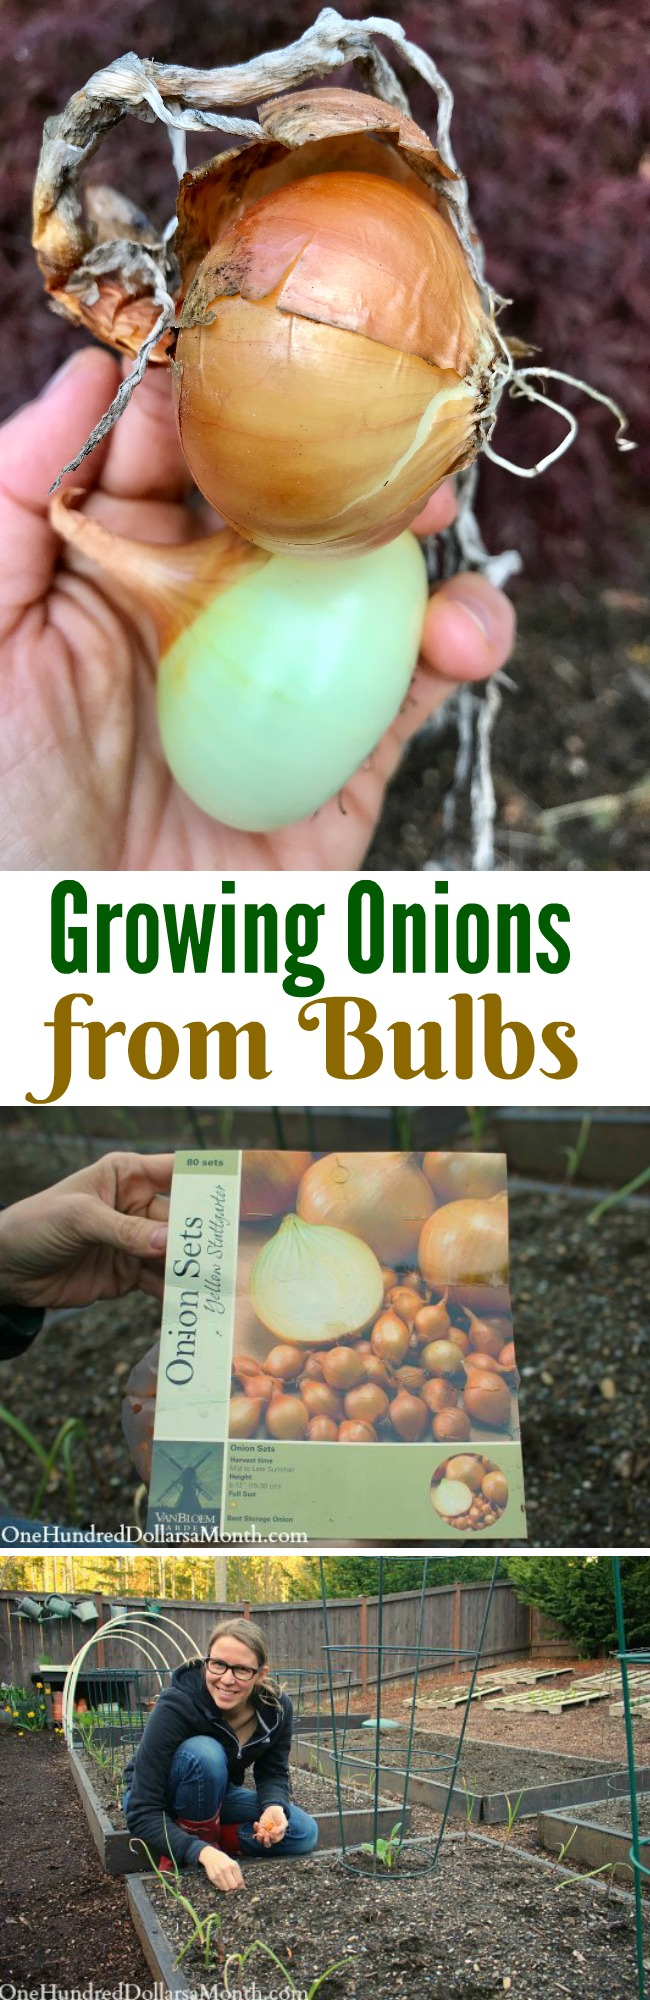 Mavis Garden Blog – How Do You Grow Onions?